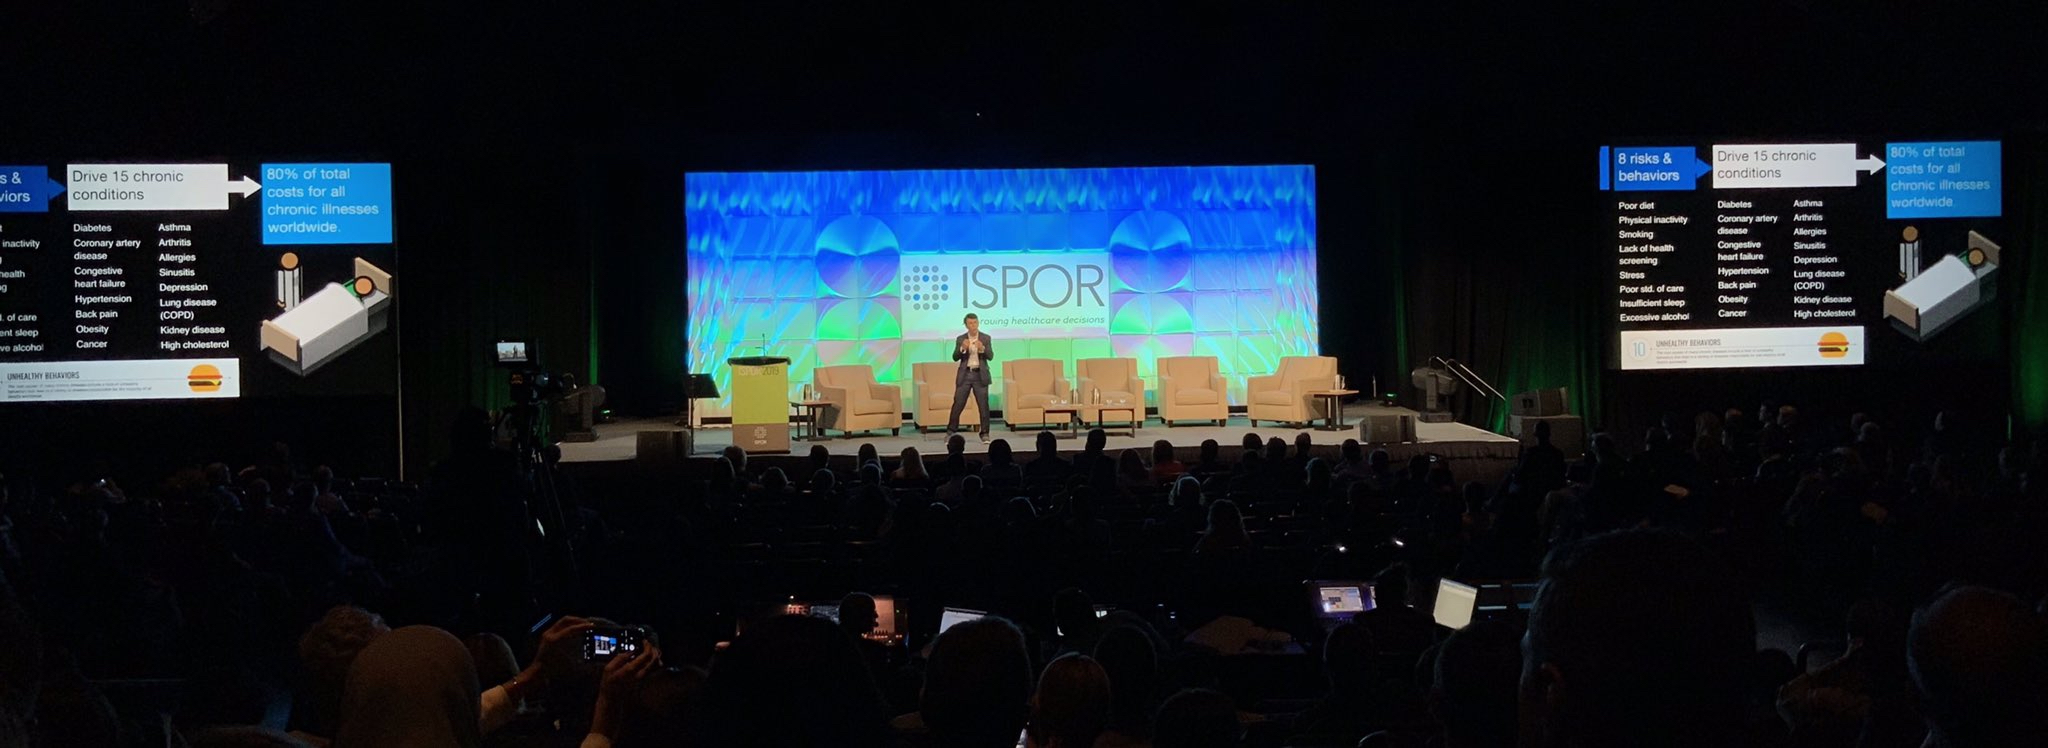 Daniel Kraft keynoting ISPOR 2019